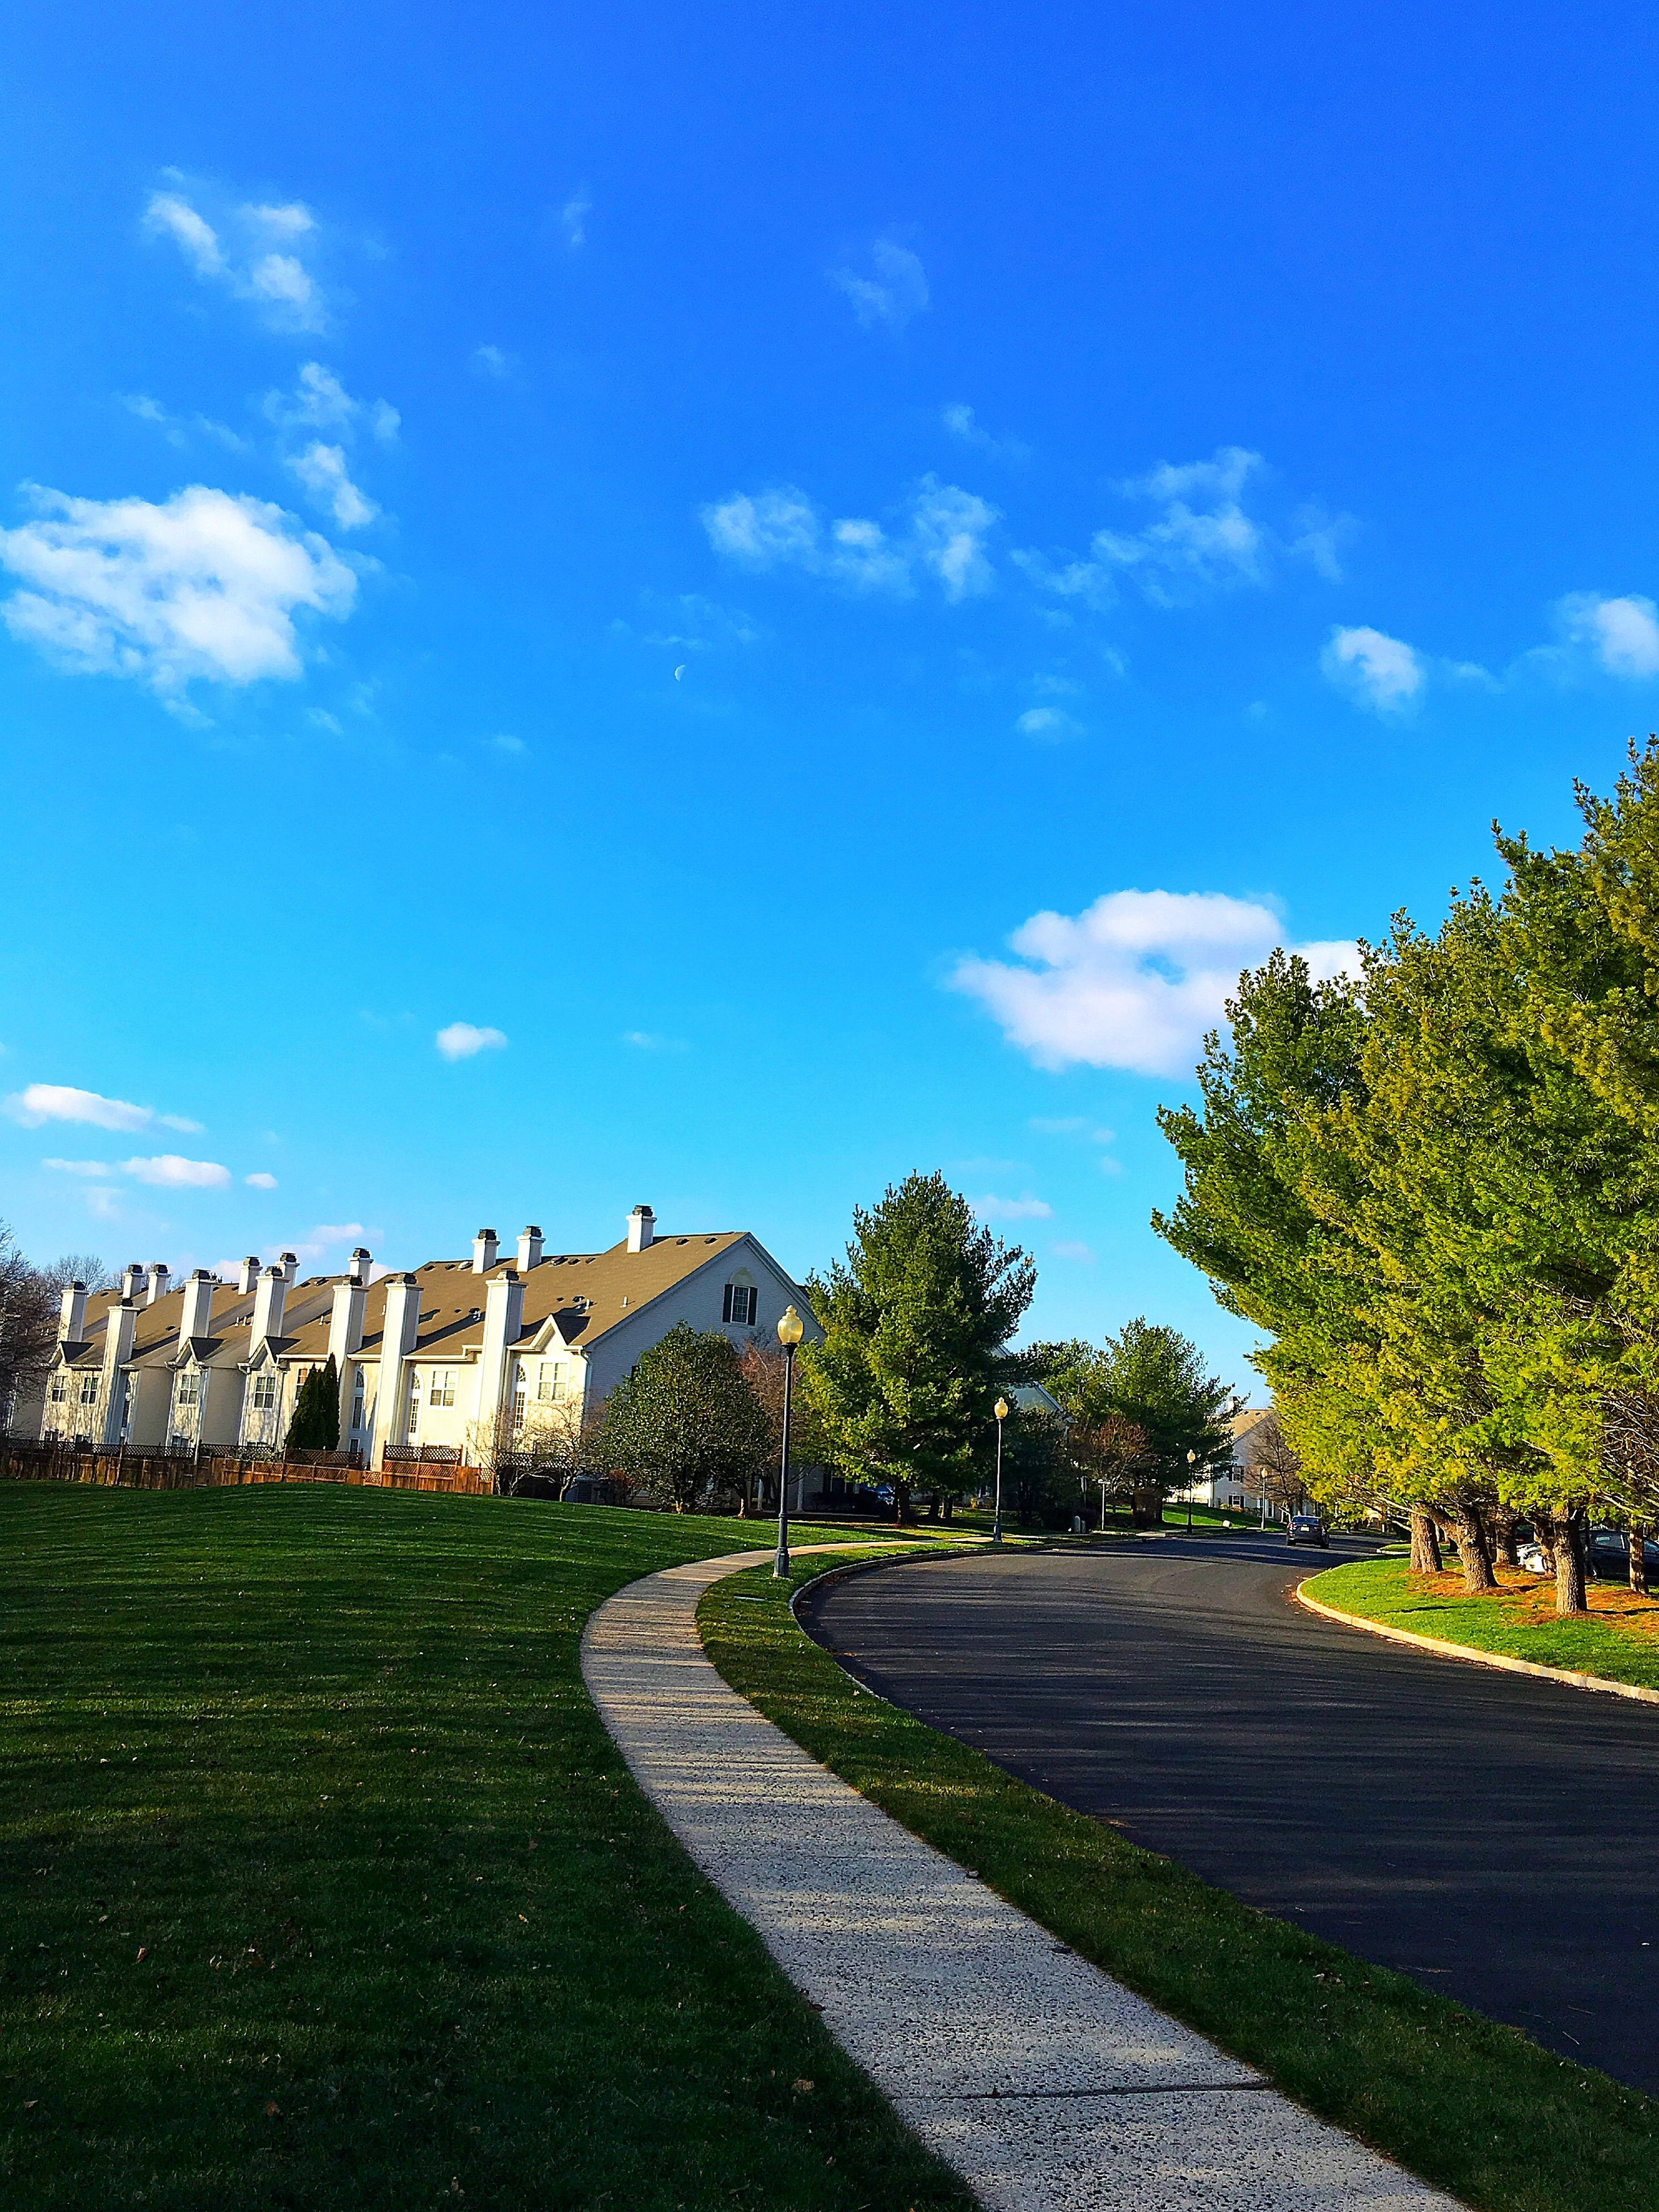 building exterior, architecture, sky, grass, built structure, tree, blue, cloud, cloud - sky, road, green color, sunlight, transportation, the way forward, day, outdoors, lawn, field, street, no people